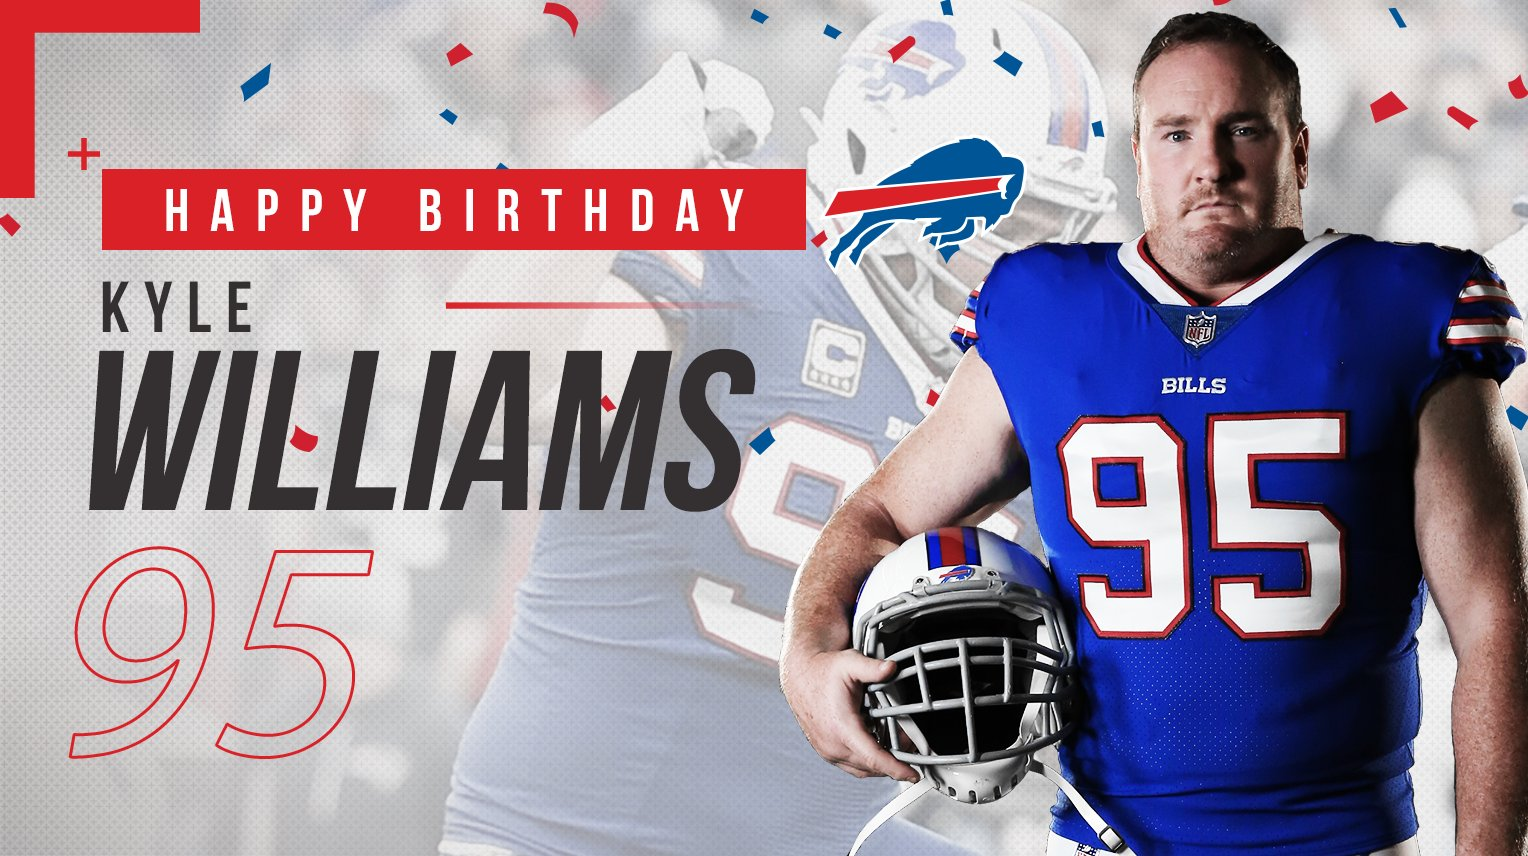 5x Pro Bowler. 13 seasons as a Buffalo Bill. And the heart and soul of our team.  Happy Birthday, Kyle Williams! �� https://t.co/AYryxHBQyJ